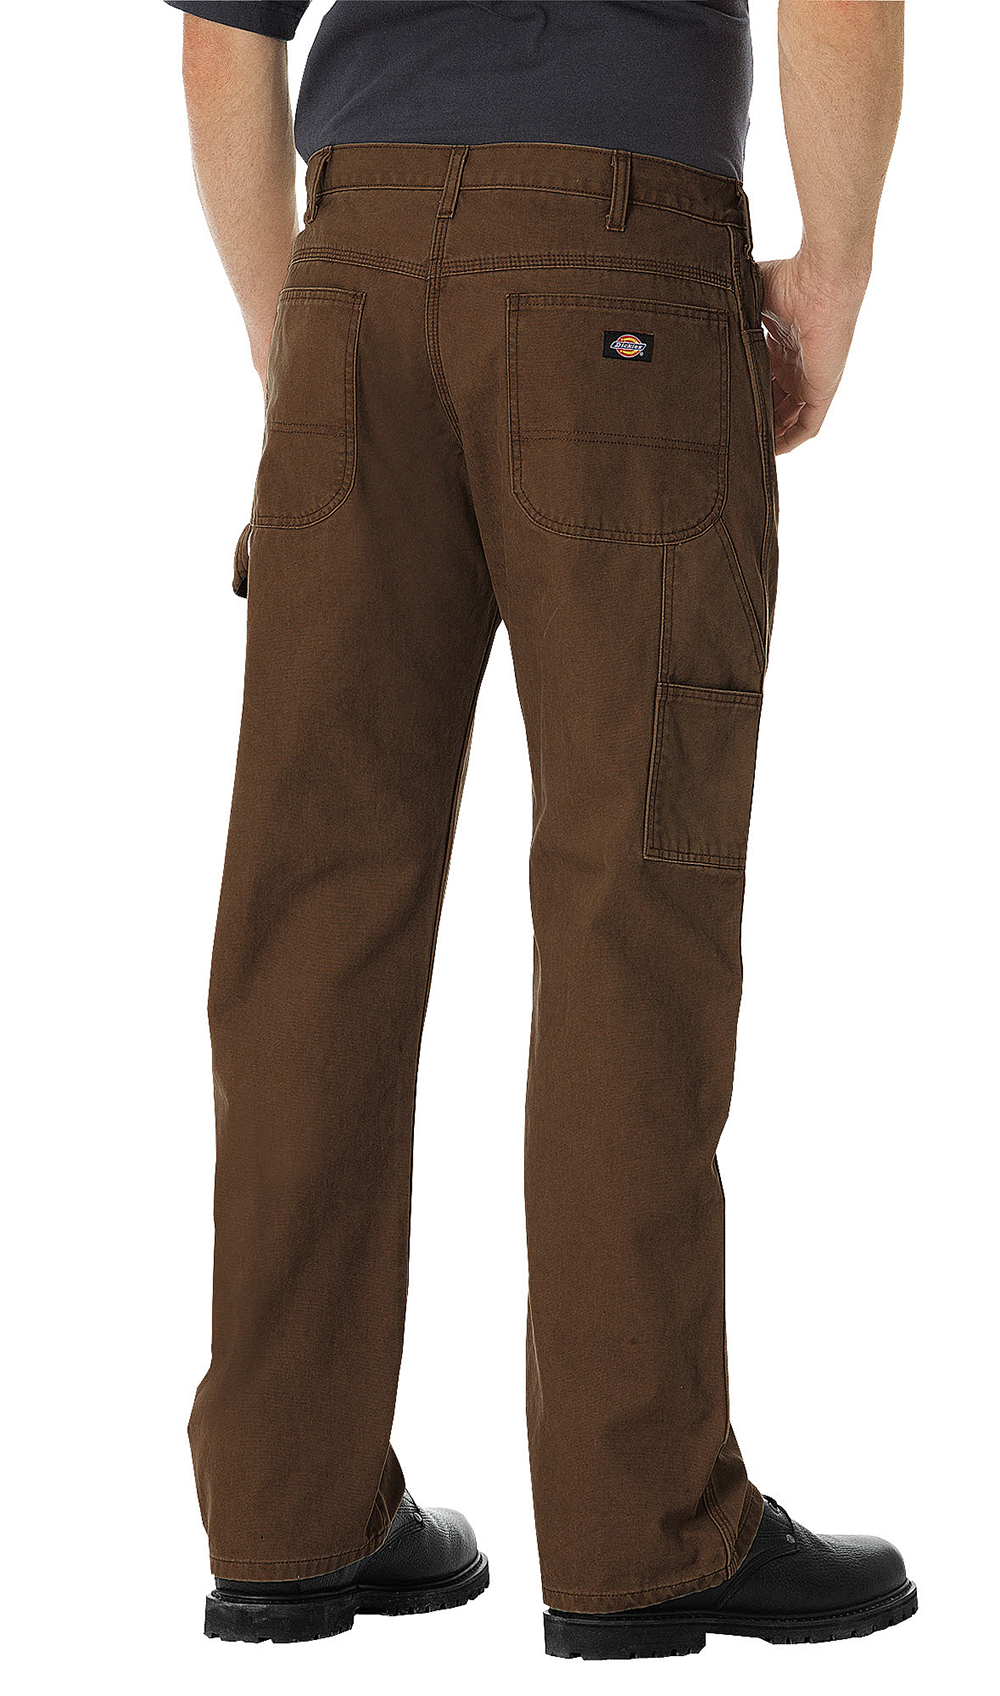 Mens Dickies Lw Carpenter Pants Brown